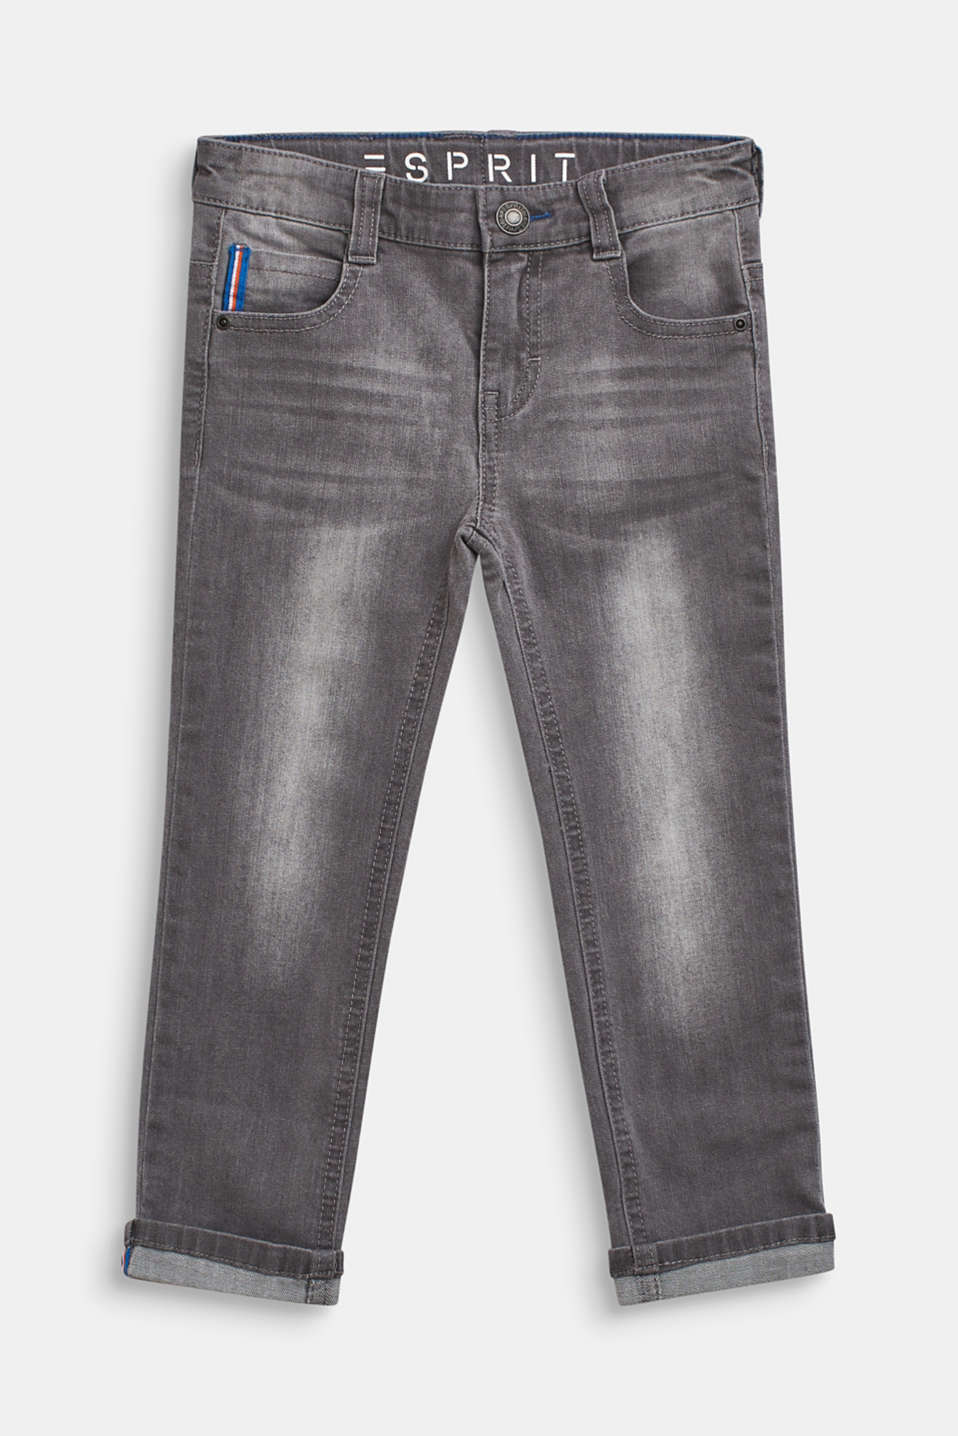 Esprit - Stretch jeans with woven tape details